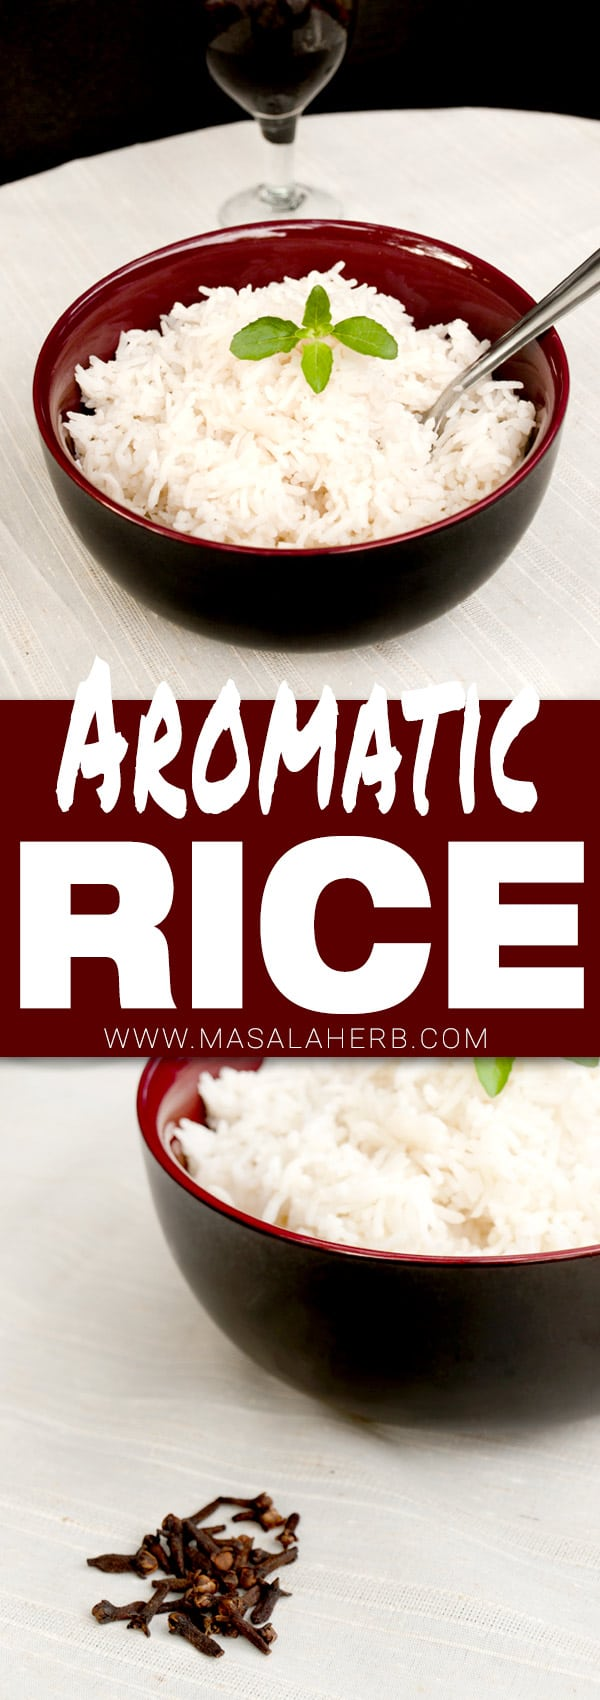 Fragrant Rice Recipe with Clove - Easy Aromatic Rice Side Dish - How to make fragrant rice www.MasalaHerb.com #rice #sidedish #masalaherb